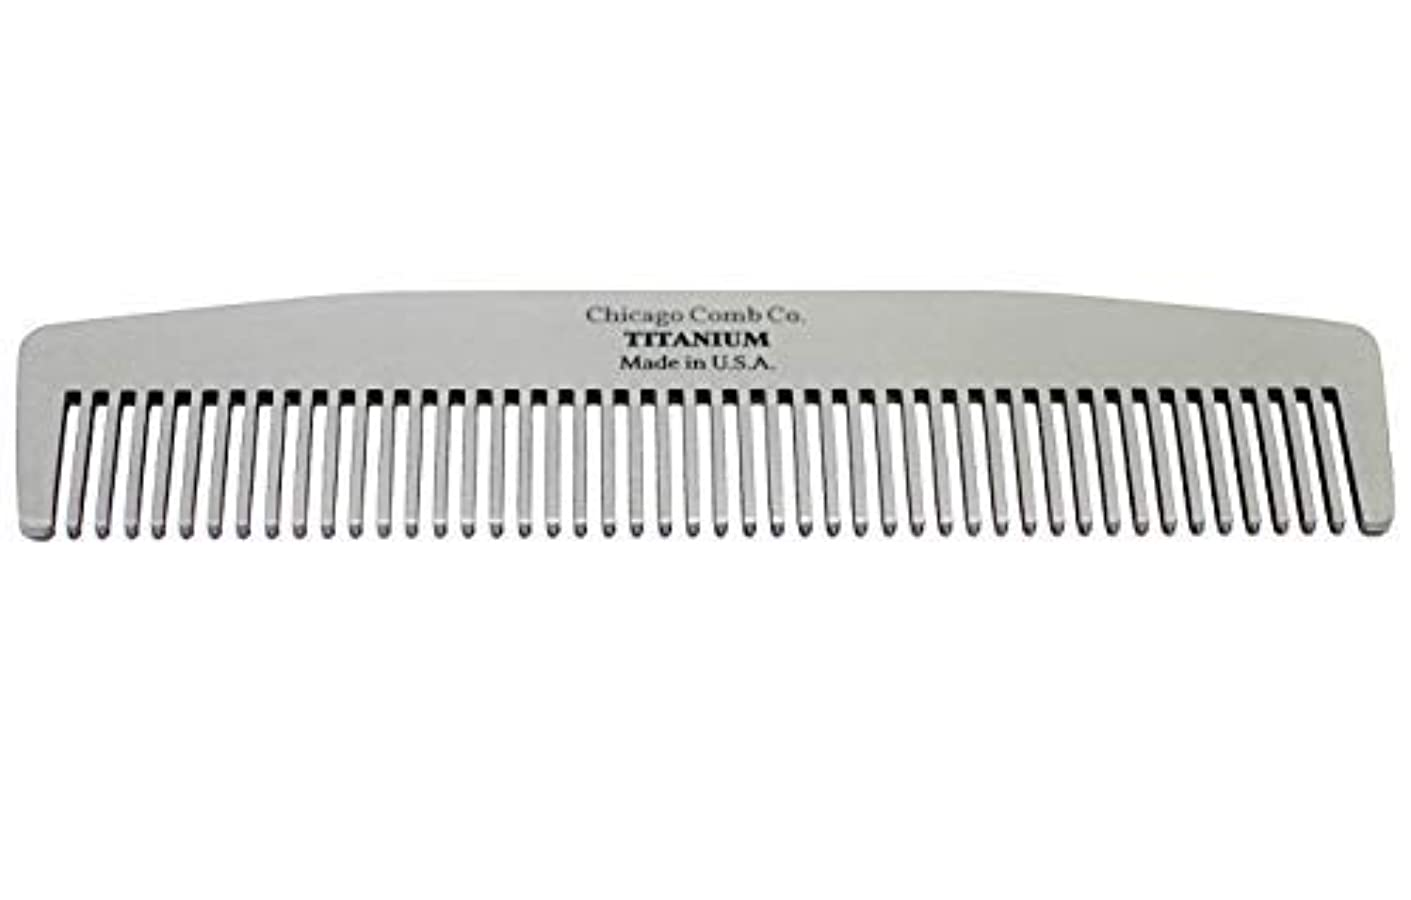 引き金明確にメタルラインChicago Comb Model No. 3 Titanium, Made in USA, Ultra-Smooth, Strong, Light, Anti-Static, 5.5 in. (14 cm) Long...